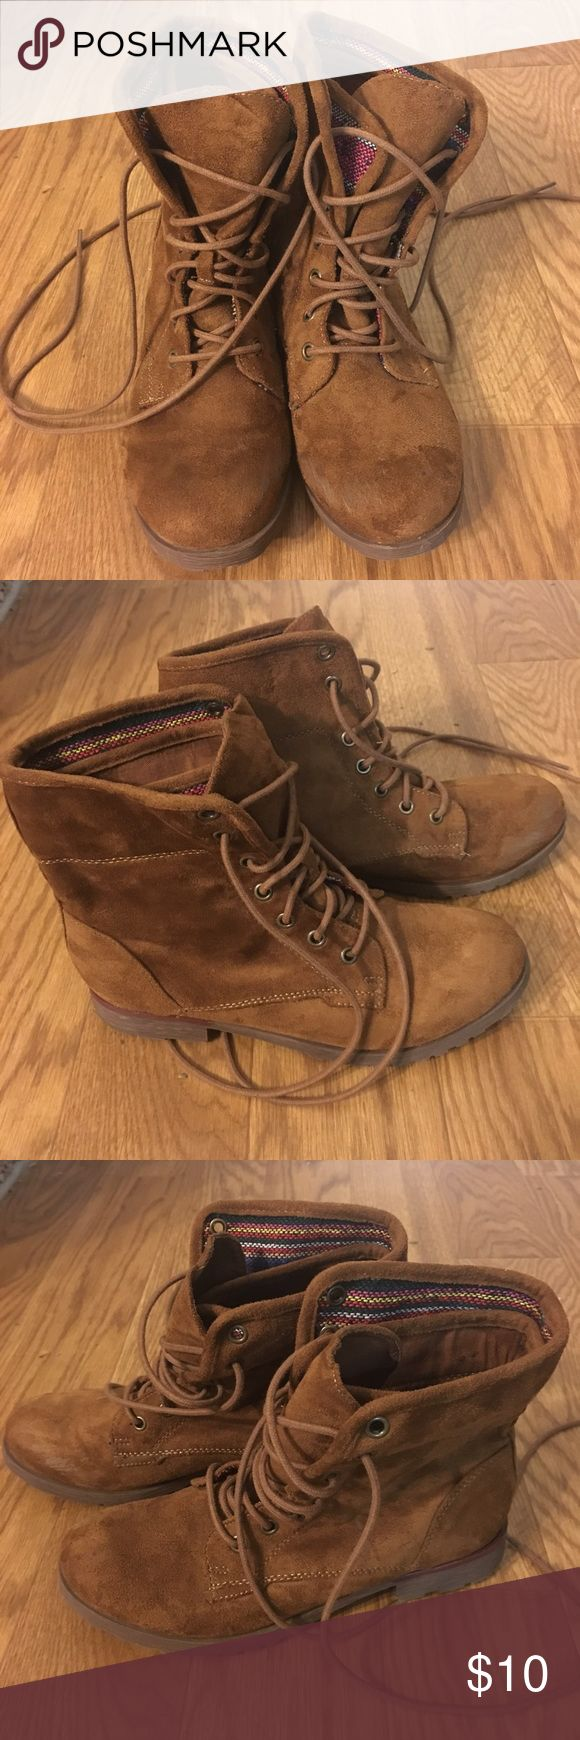 tan lace up boots size 7. tan/camel color. made from soft faux suede-like material. there are some scuffs on the toes (see pictures) so i'm selling for less, but aside from that they're in good condition! lace up combat boot style. they can fold down. Shoes Lace Up Boots